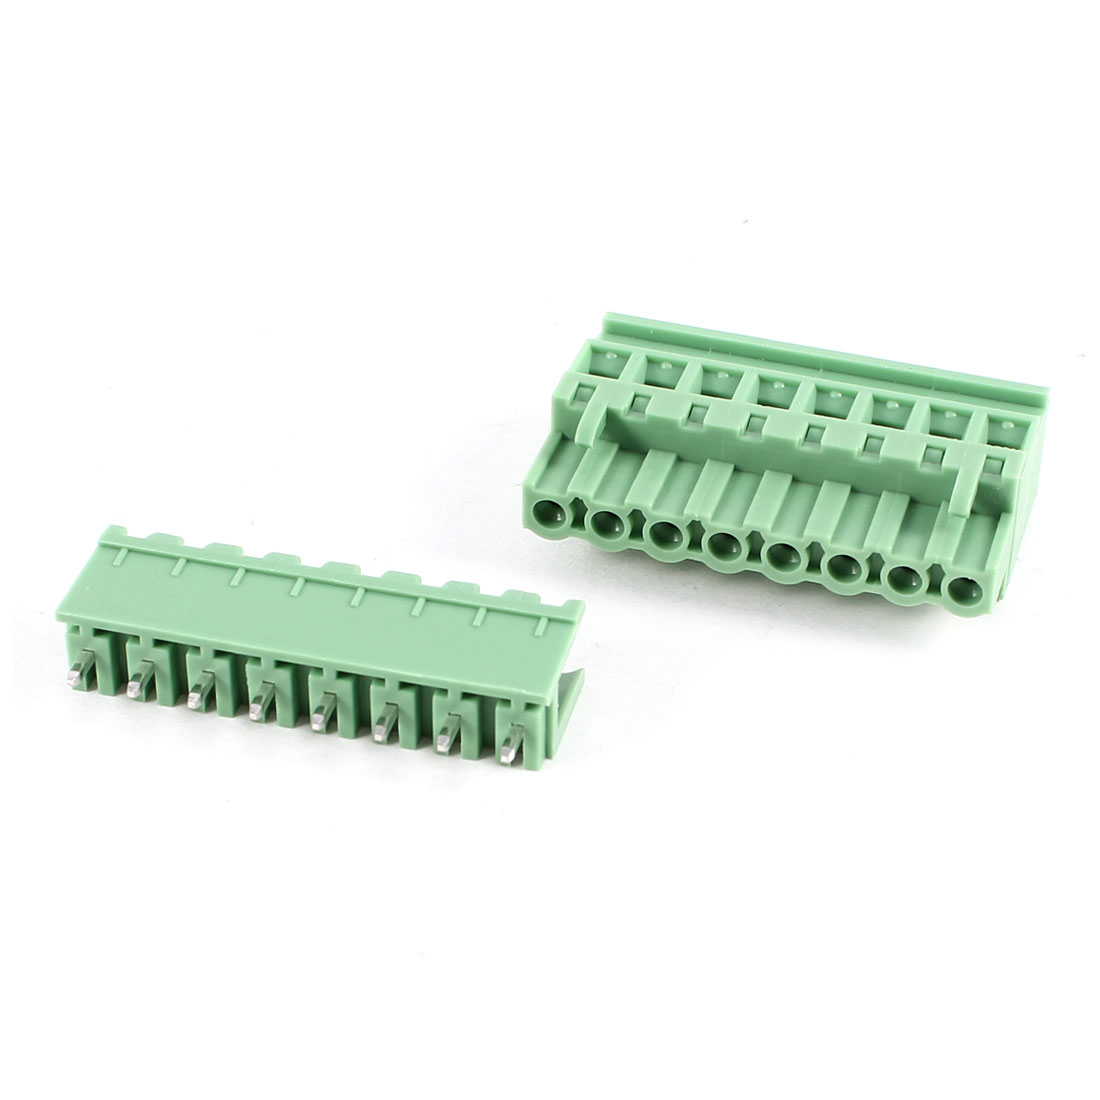 Green KF2EDGKA 5.08mm 8Position Screw Pluggable Terminal Block Connector 300V 10A